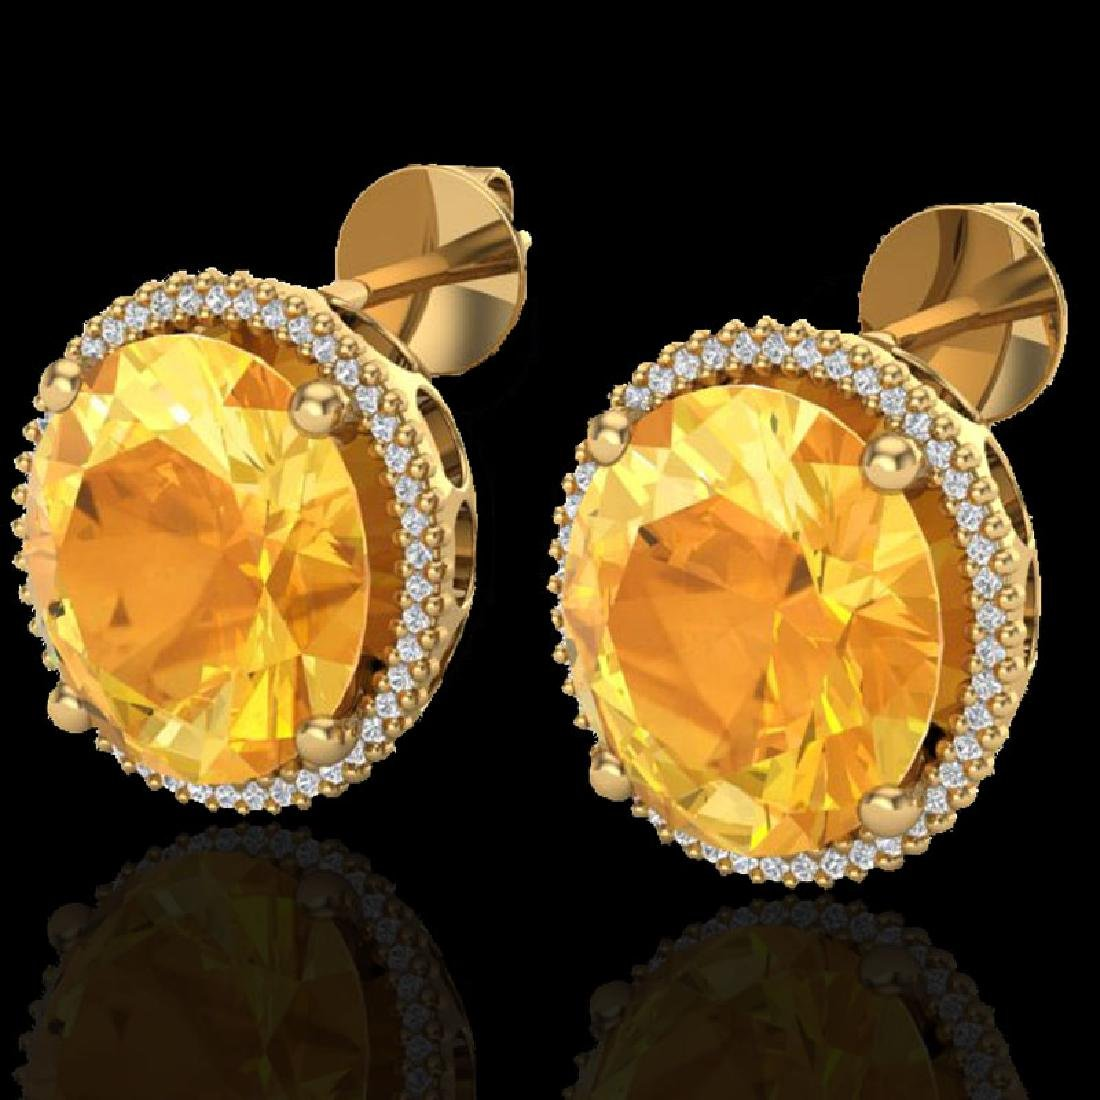 20 CTW Citrine & Micro Pave VS/SI Diamond Halo Earrings